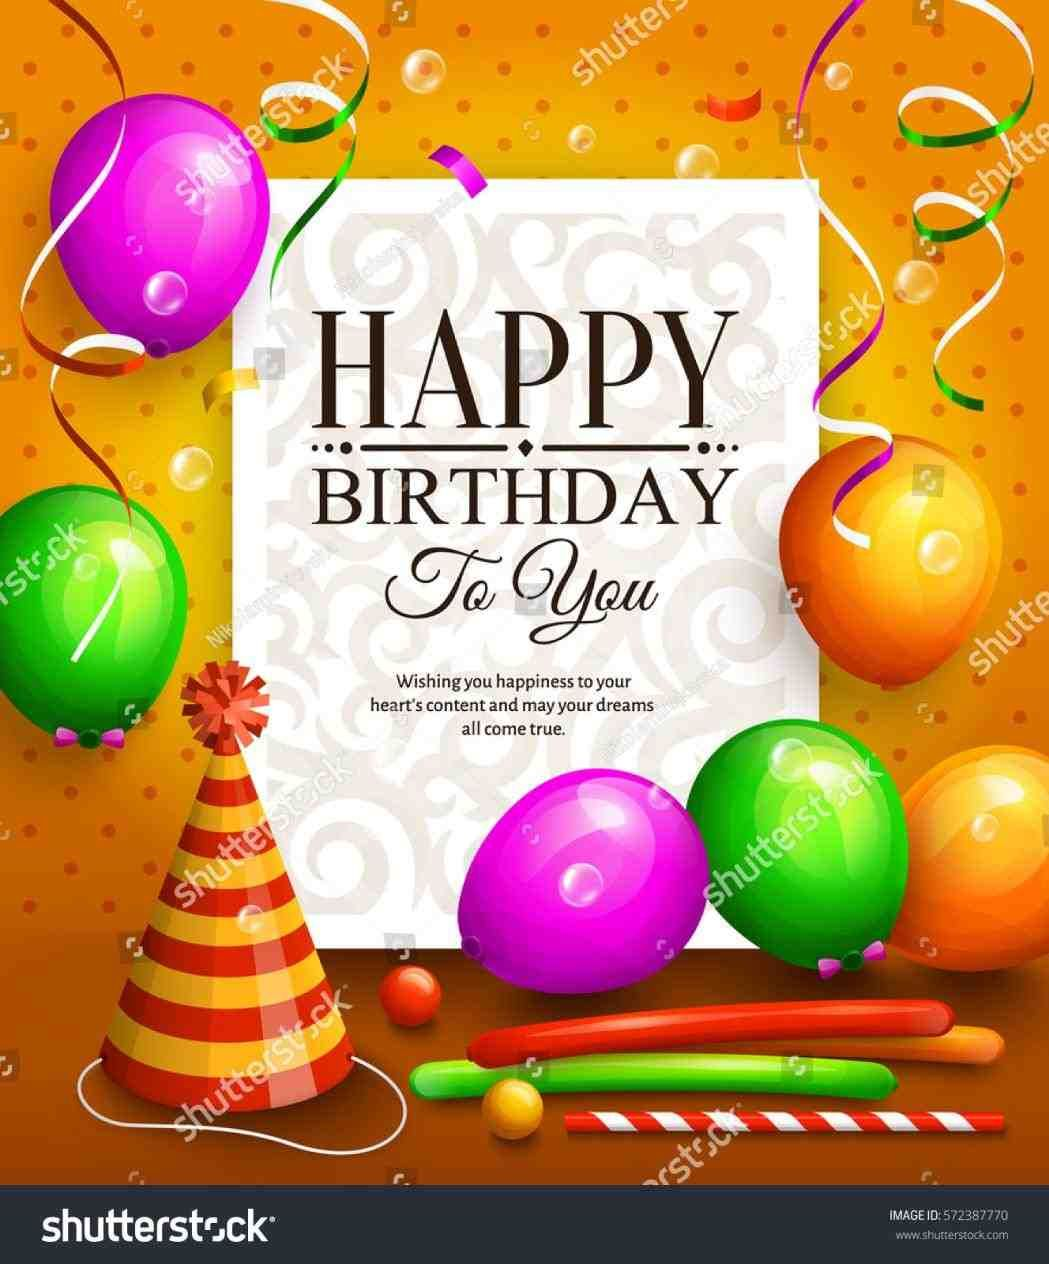 Happy Birthday Wallpapers Free Download. Birthday Wishes